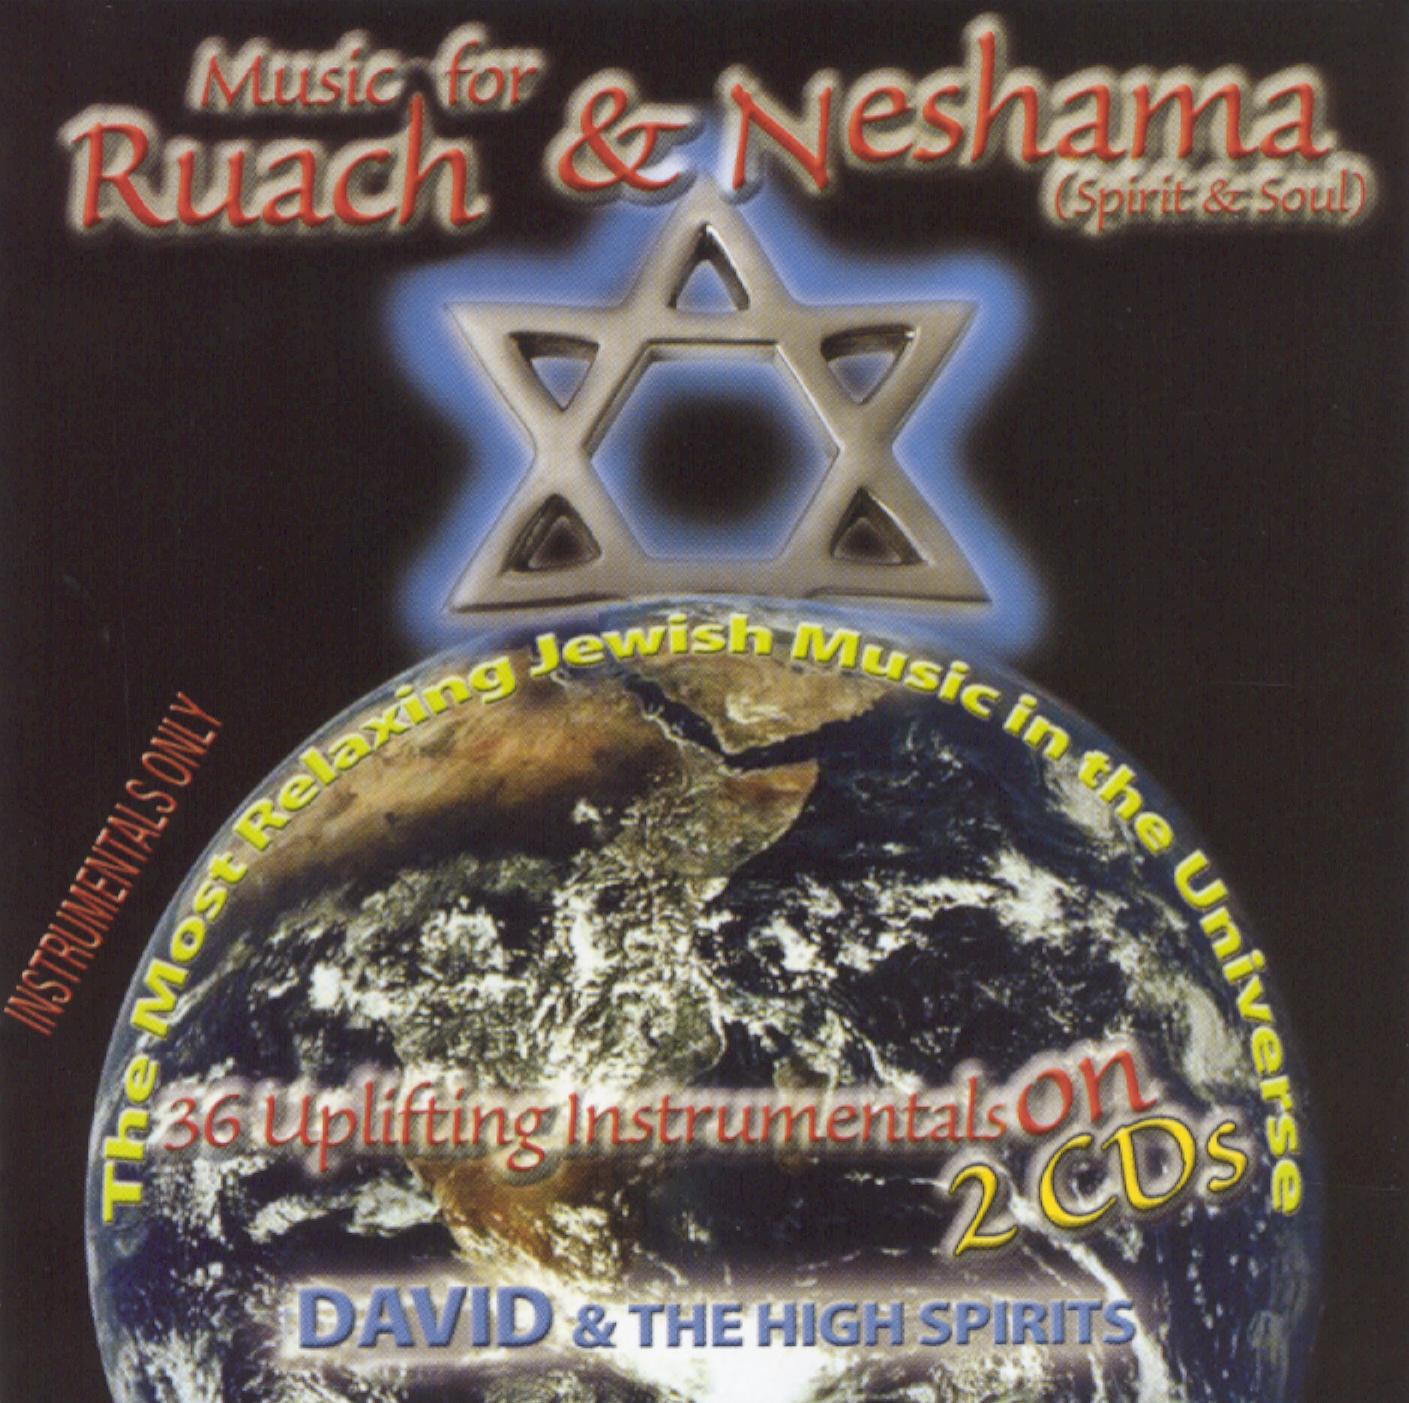 David and the High Spirits: Music For Ruach and Neshama